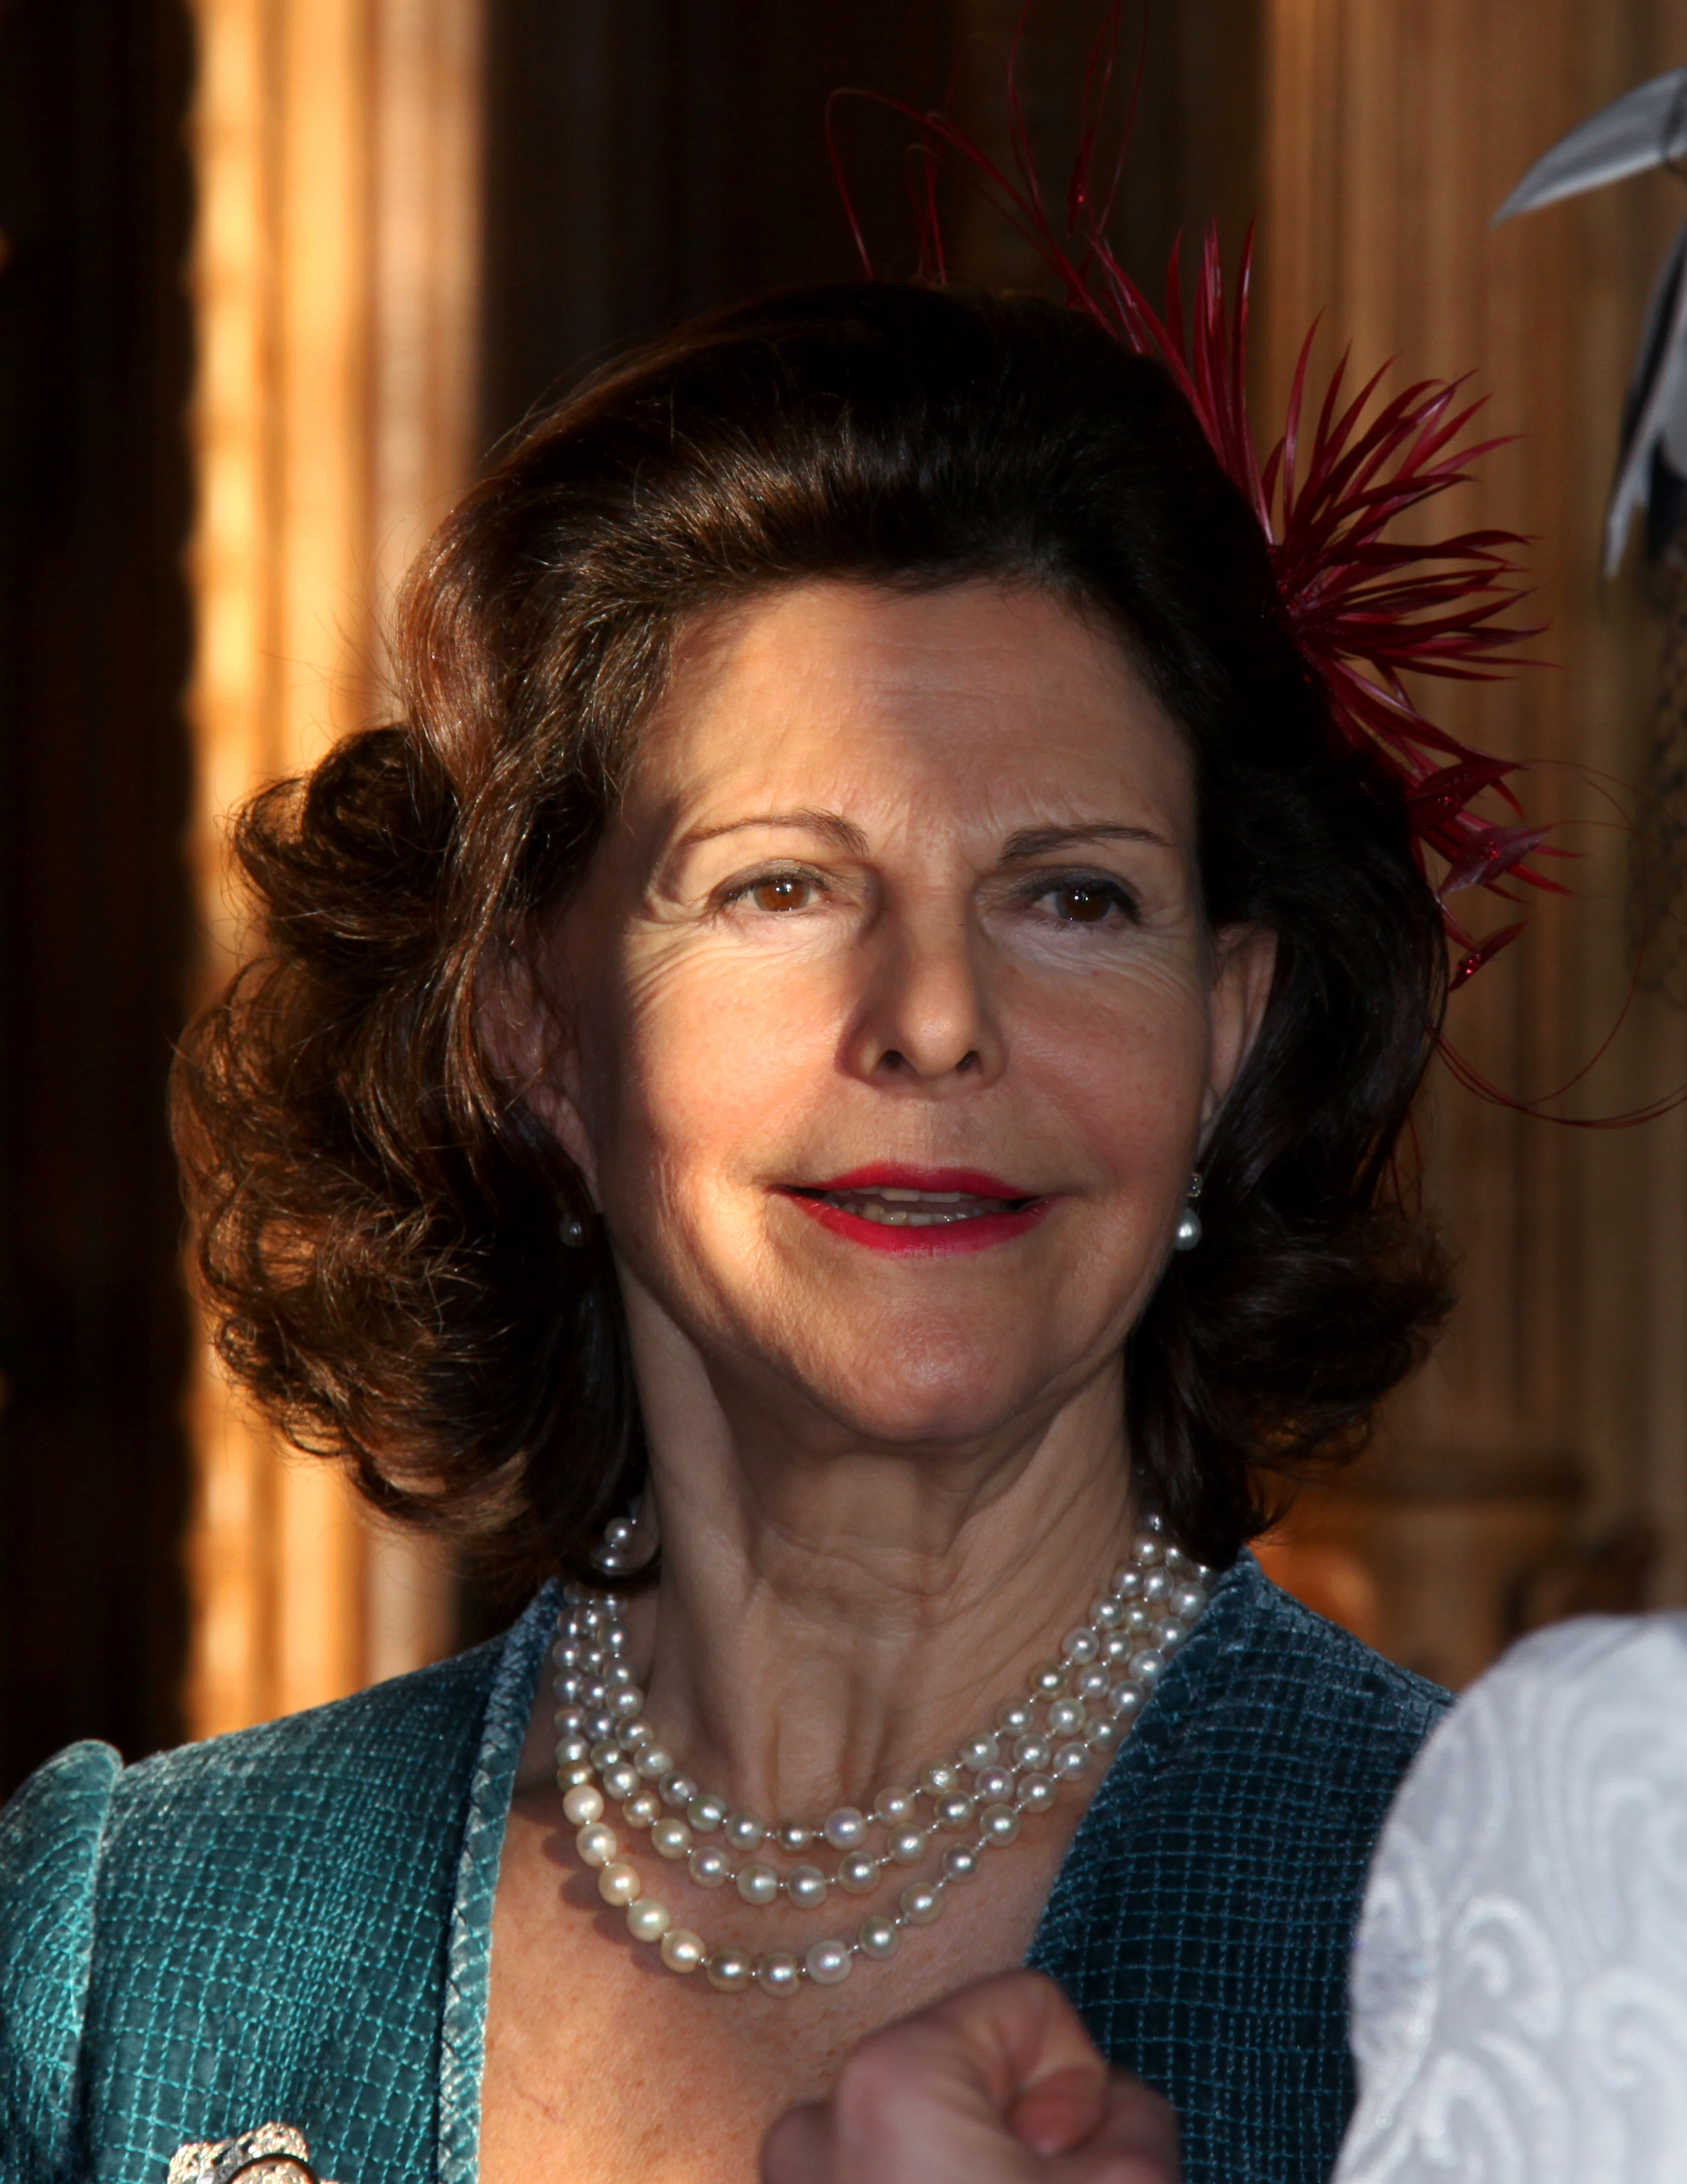 About Queen Silvia Of Sweden